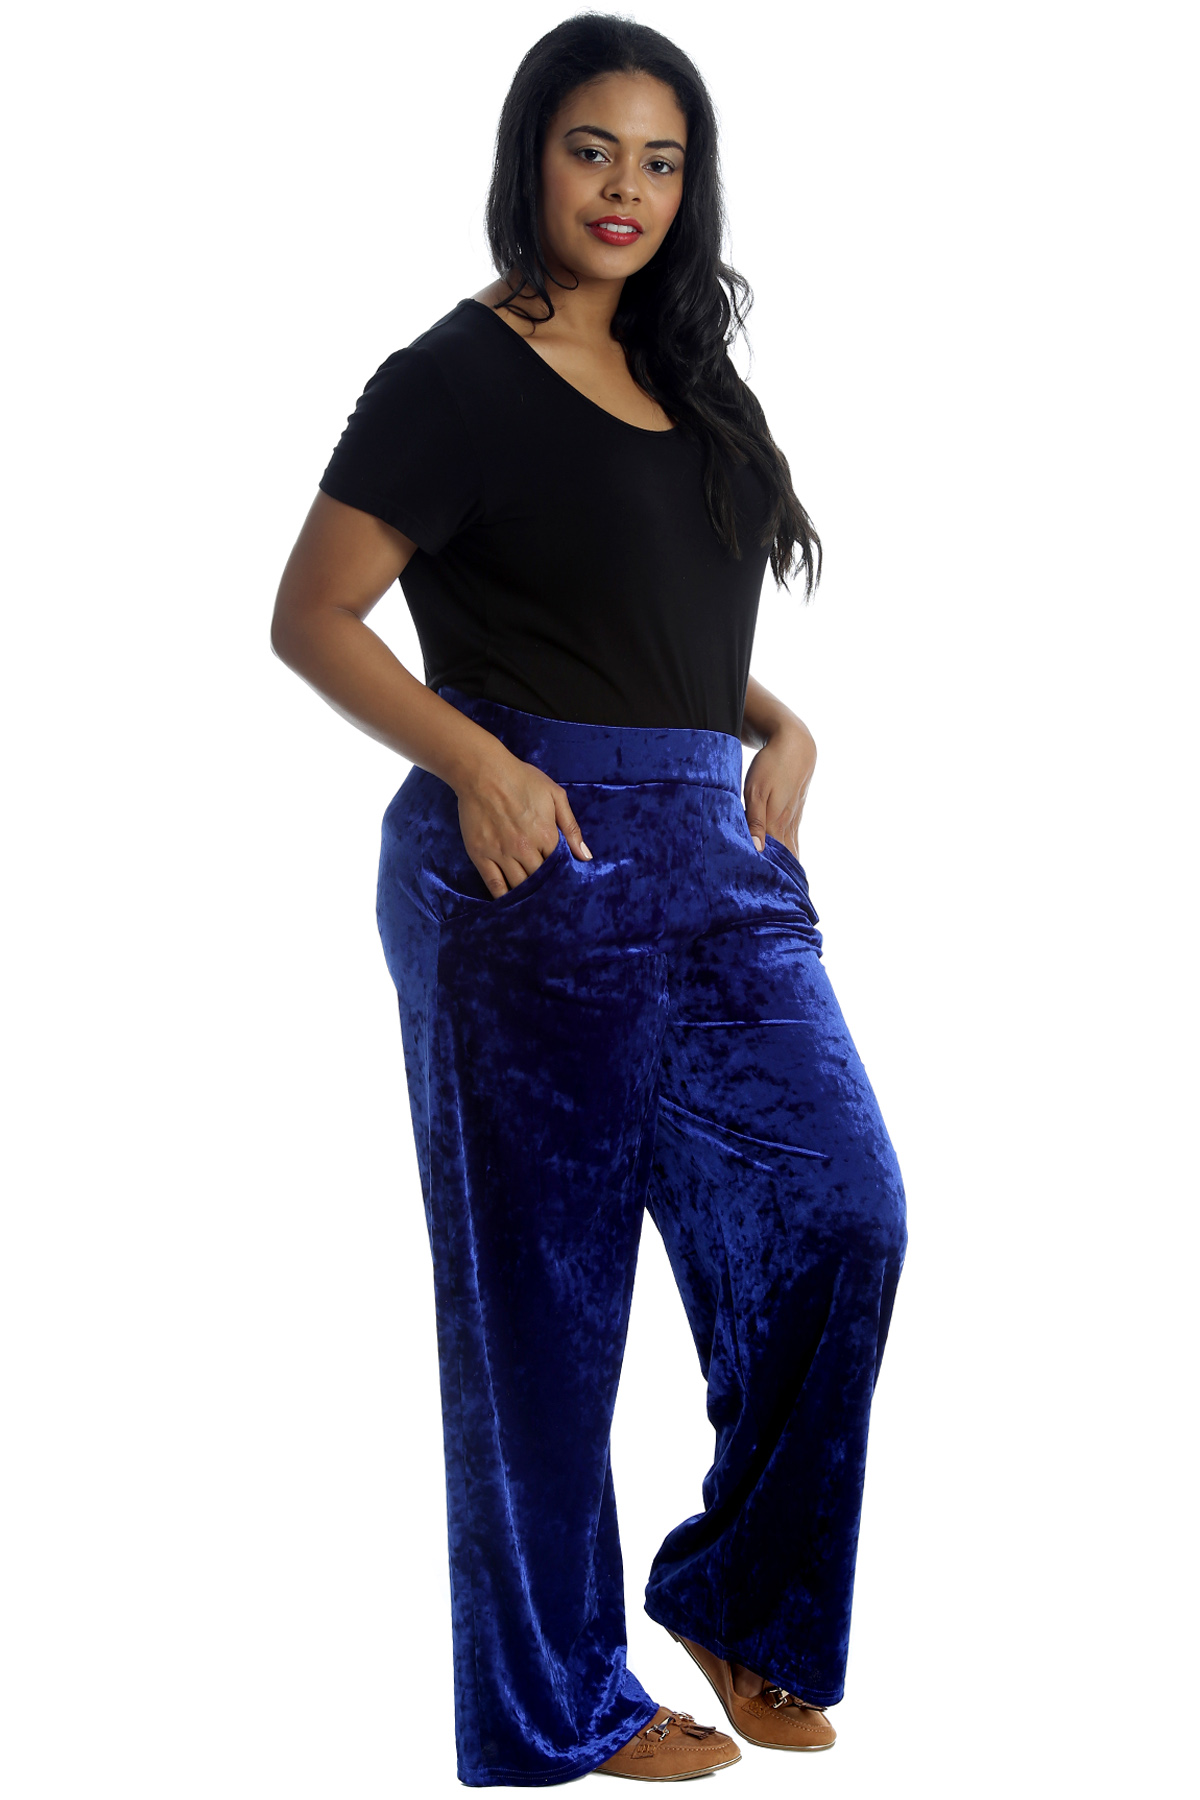 Find fashionable plus size pants for women, including cargo pants, dress pants, twill pants and corduroy pants. Old Navy is your destination for fashion that fits in sizes , available exclusively online. Skip to top navigation Skip to shopping bag Skip to main content Skip to footer links.